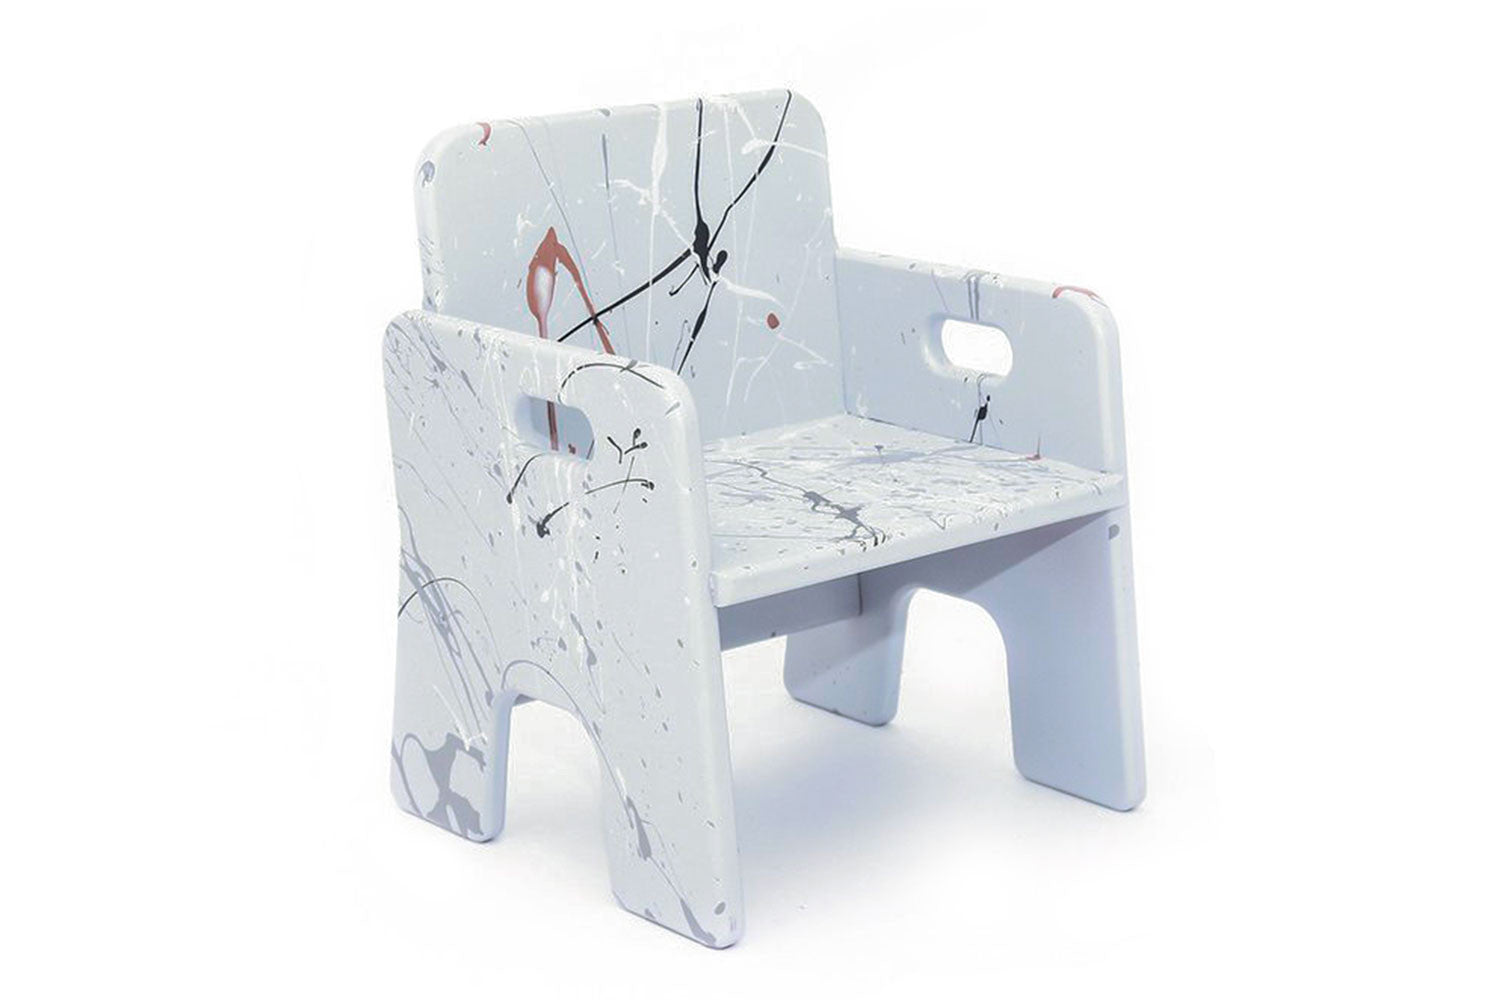 The Mini Chair in Grey Splat